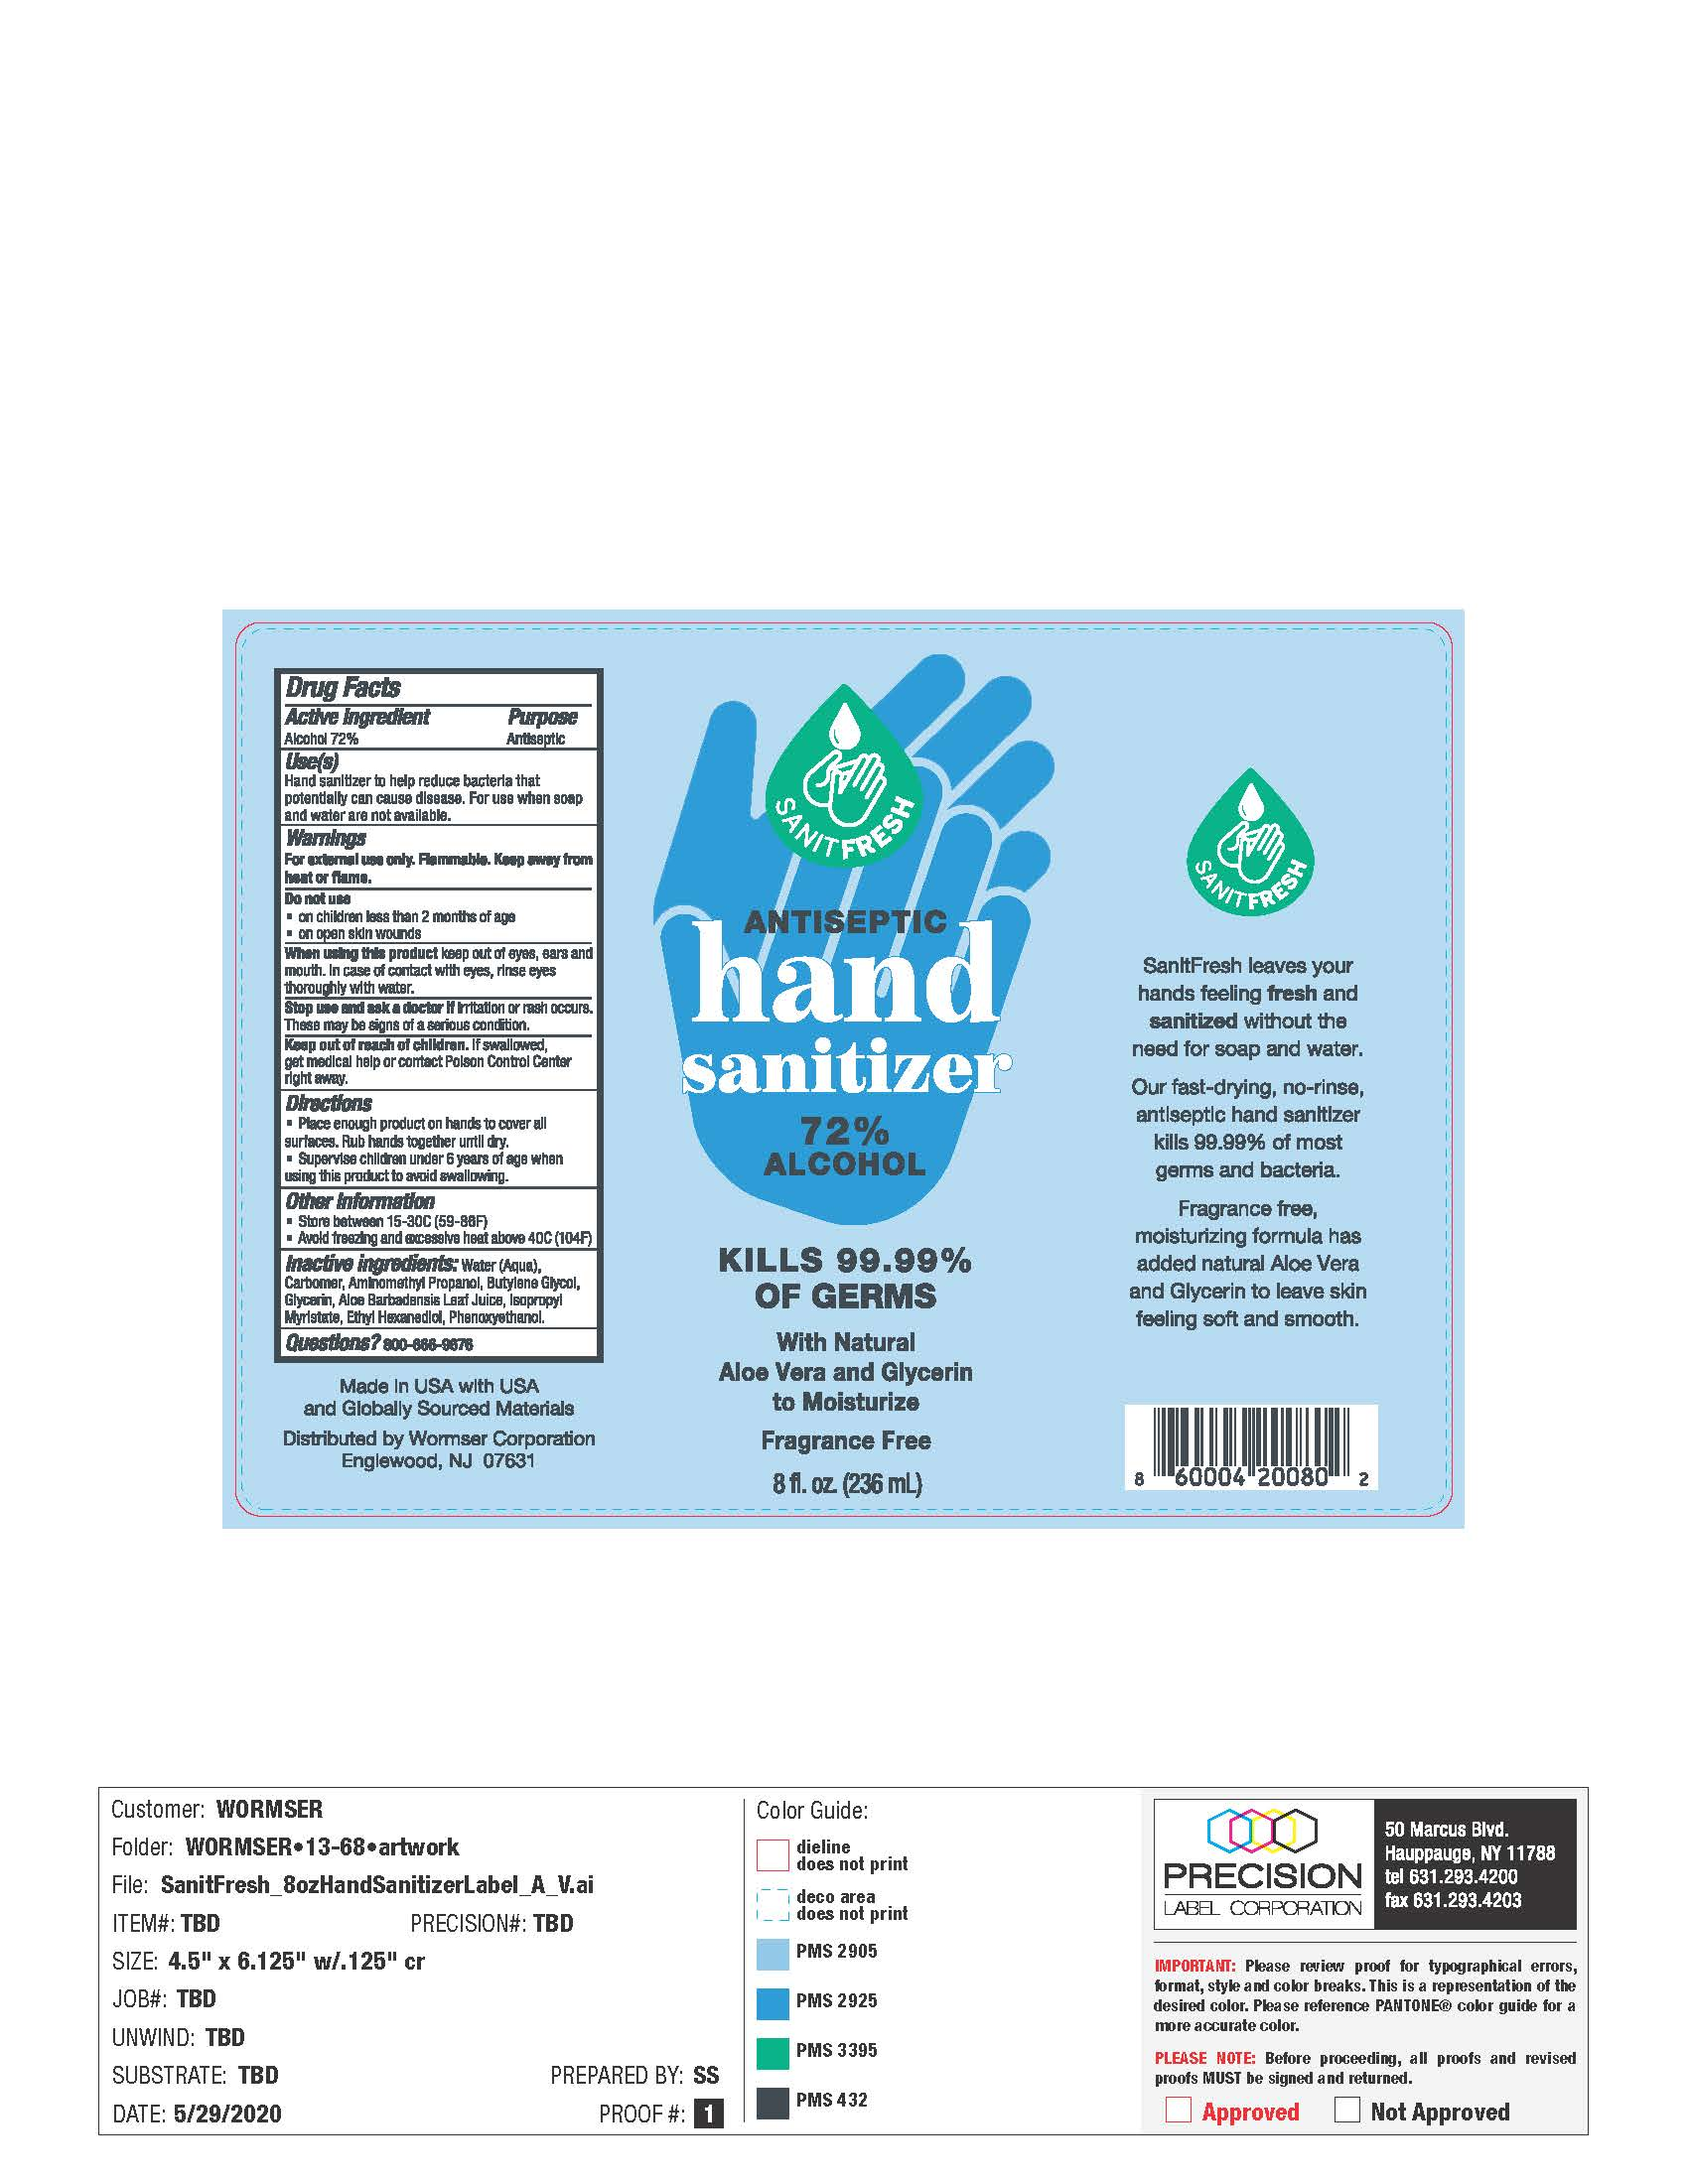 Packaging Label